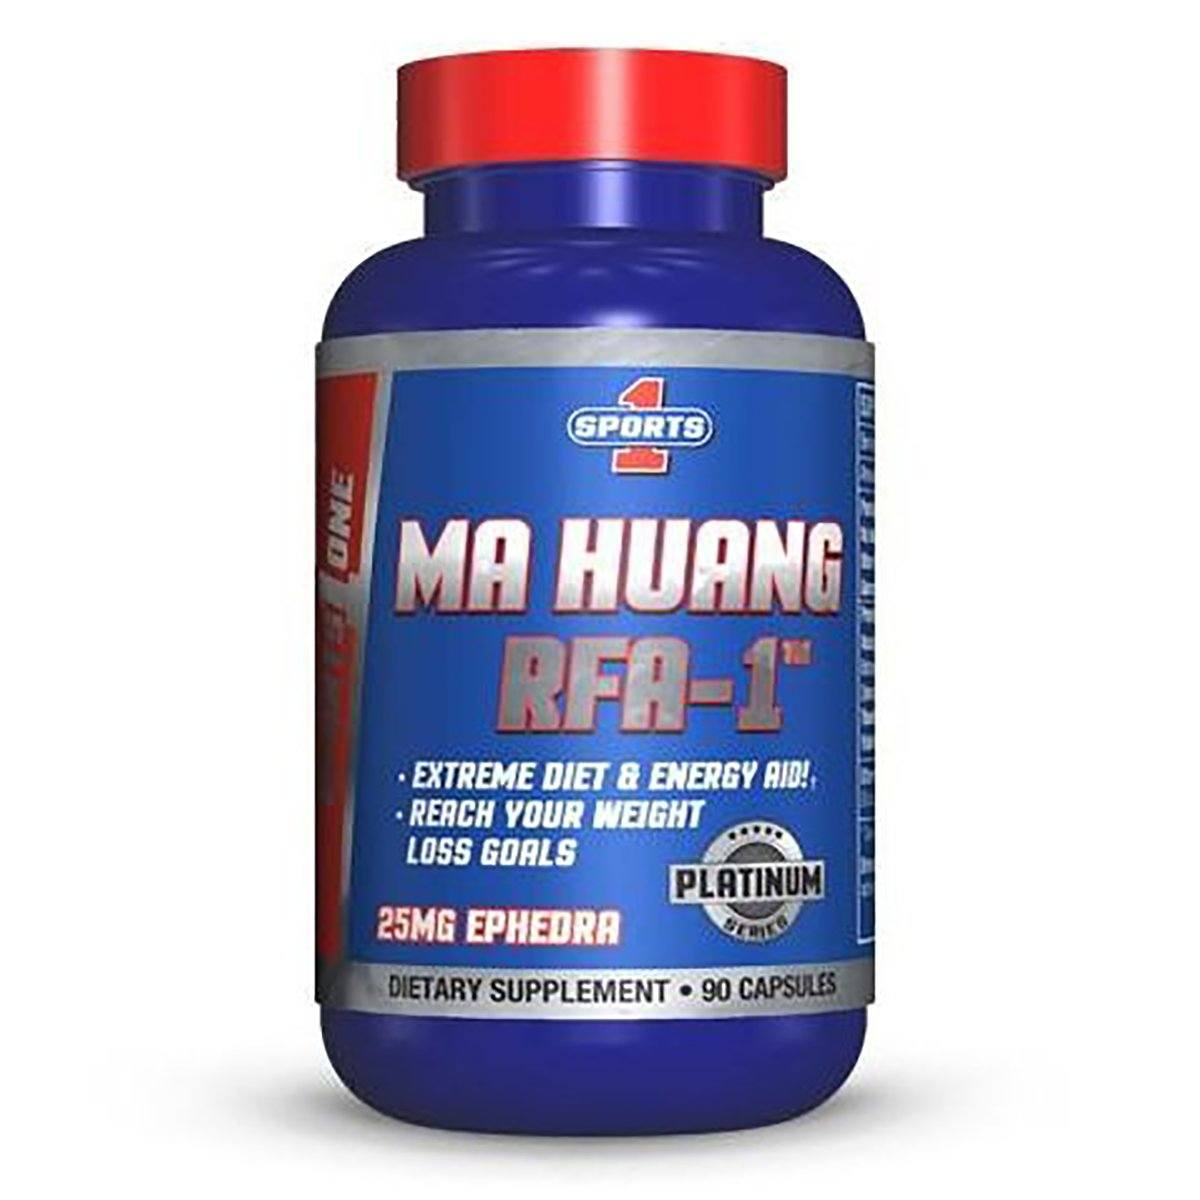 Sports 1 MA HUANG RFA-1 90C Diet/Energy Sports One  (1059306864683)